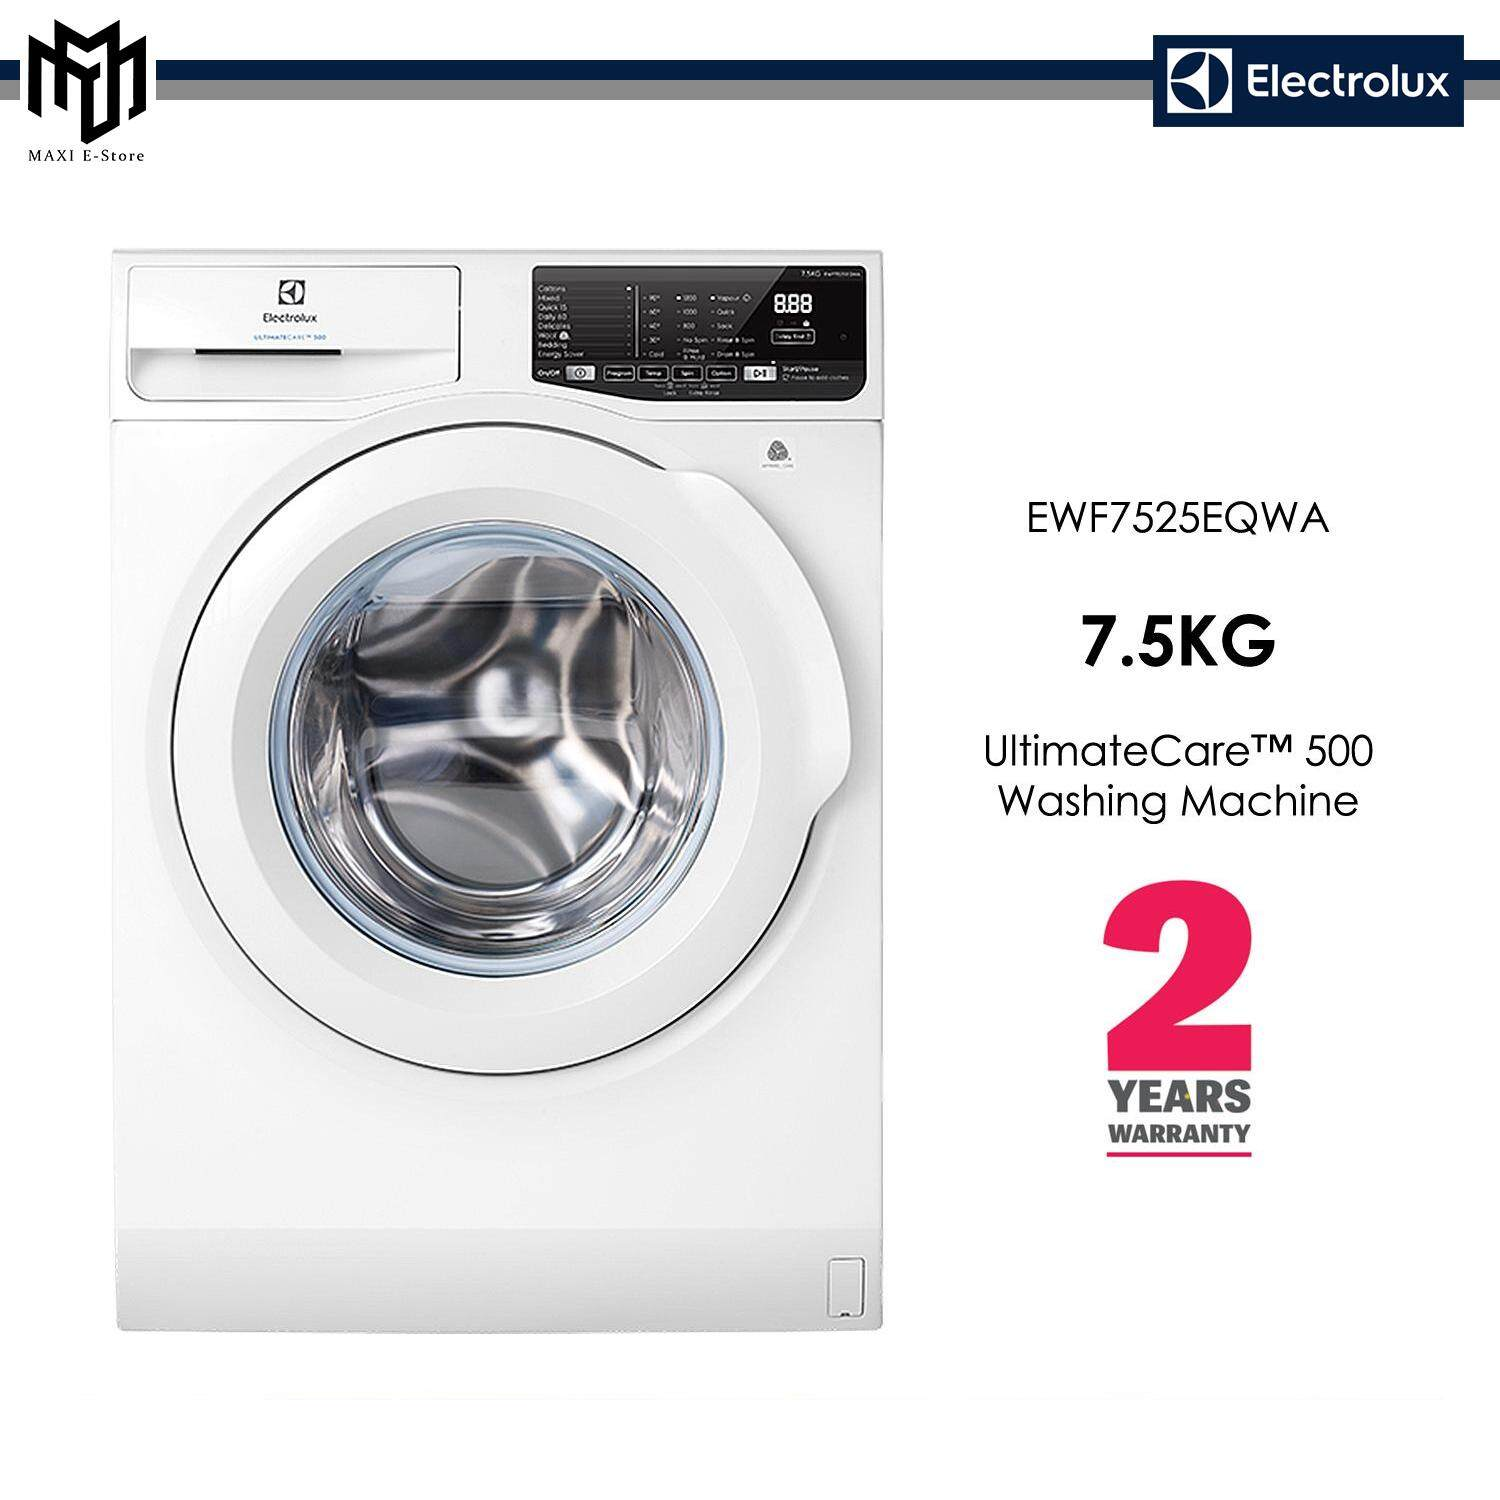 Electrolux 7.5kg UltimateCare 500 Front Load Washing Machine - EWF7525EQWA